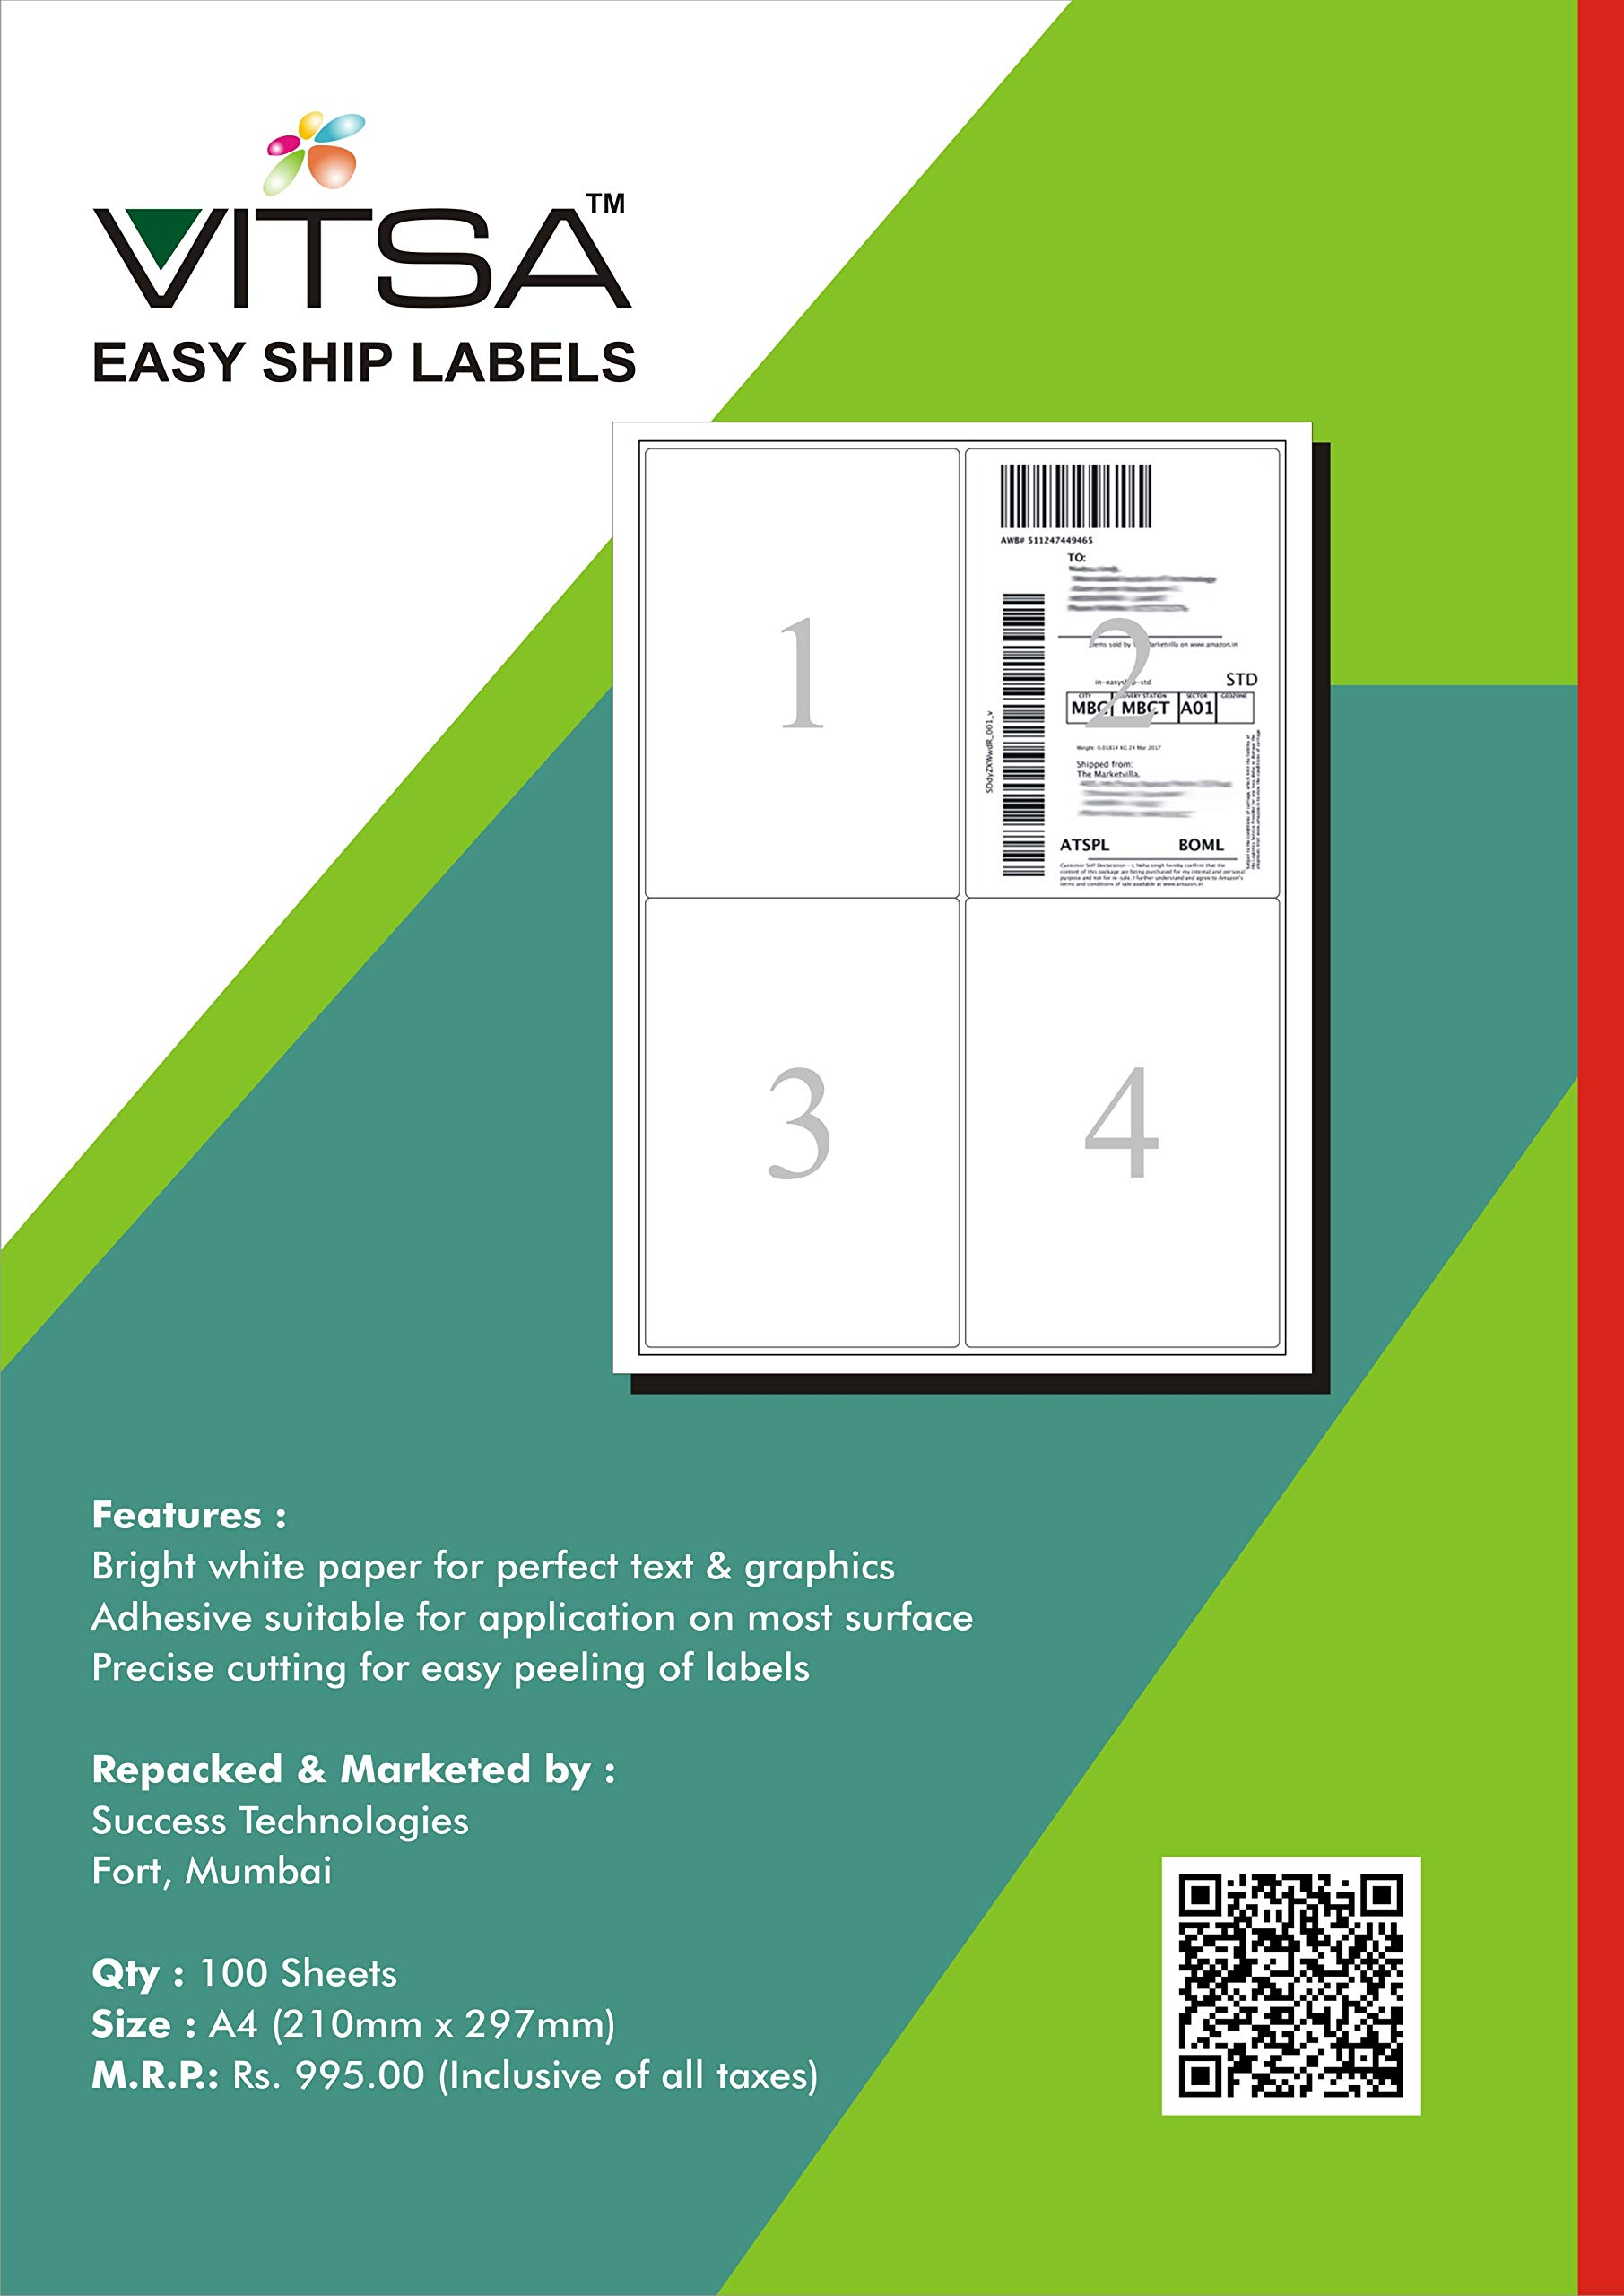 VITSA Easy Ship Label Sticky Labels - Pack of 250 Sheets